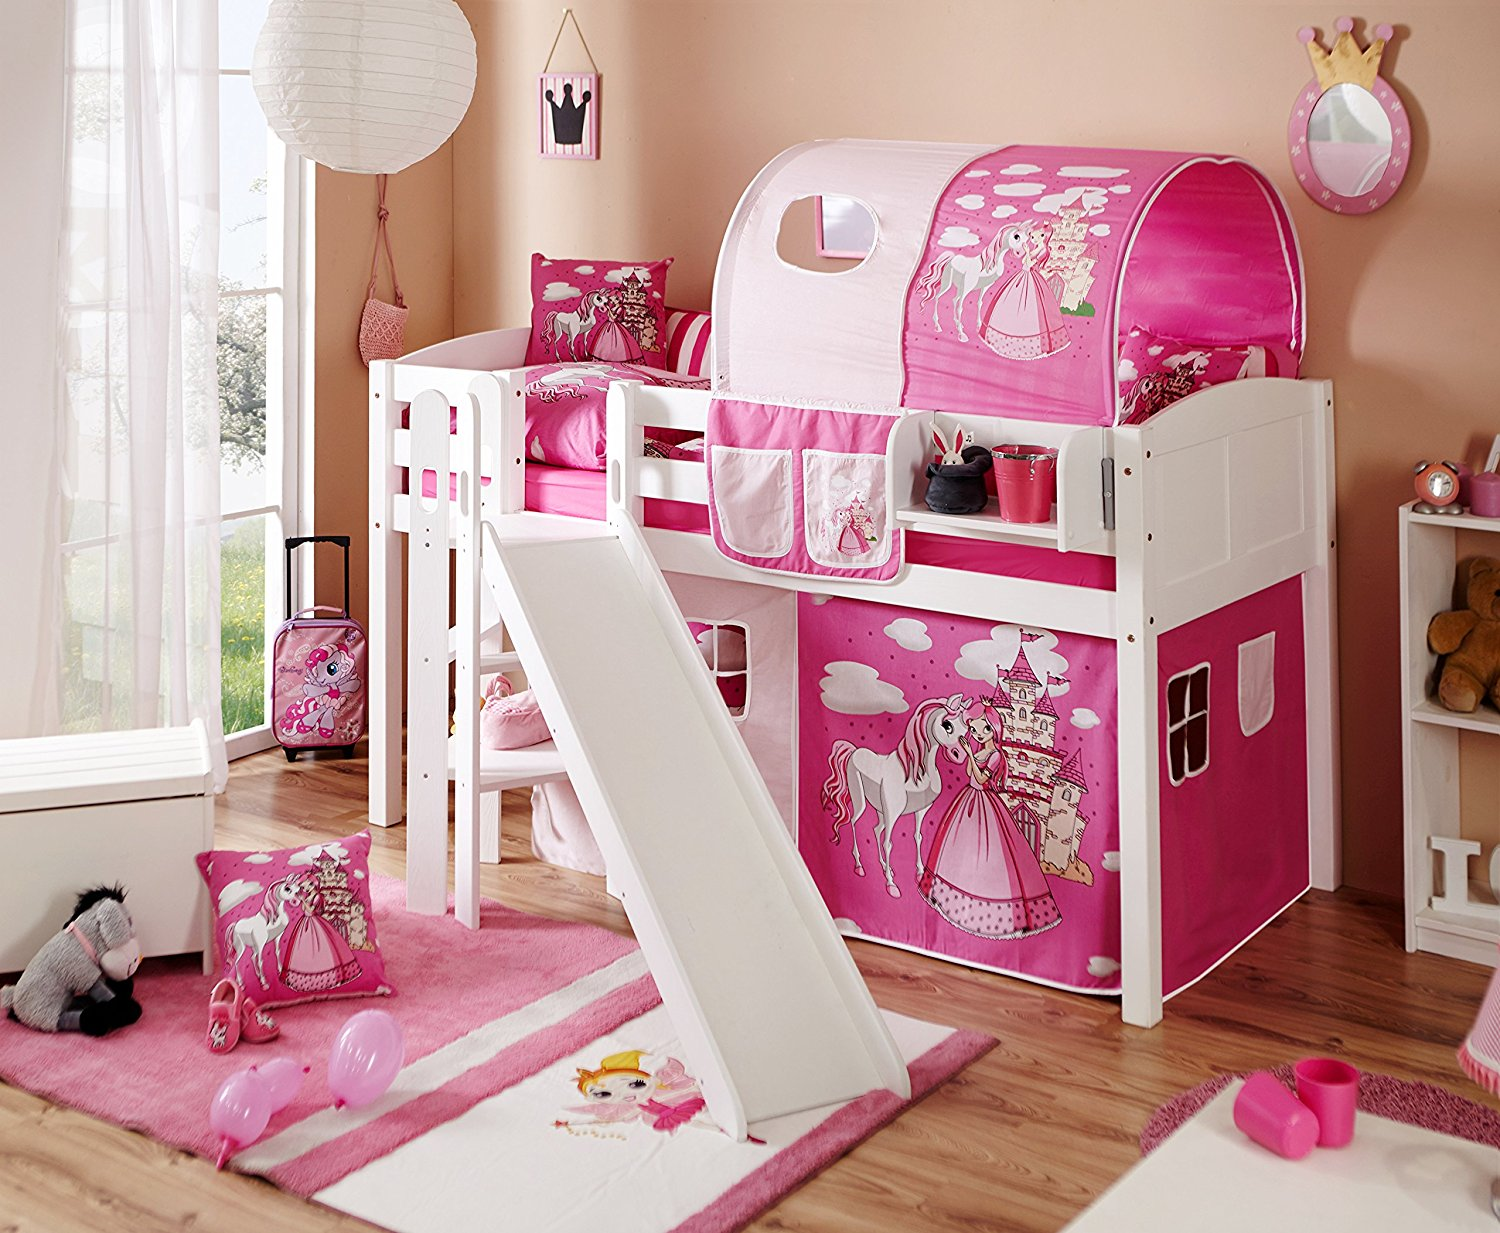 kinderhochbett mit rutsche ratgeber familien. Black Bedroom Furniture Sets. Home Design Ideas